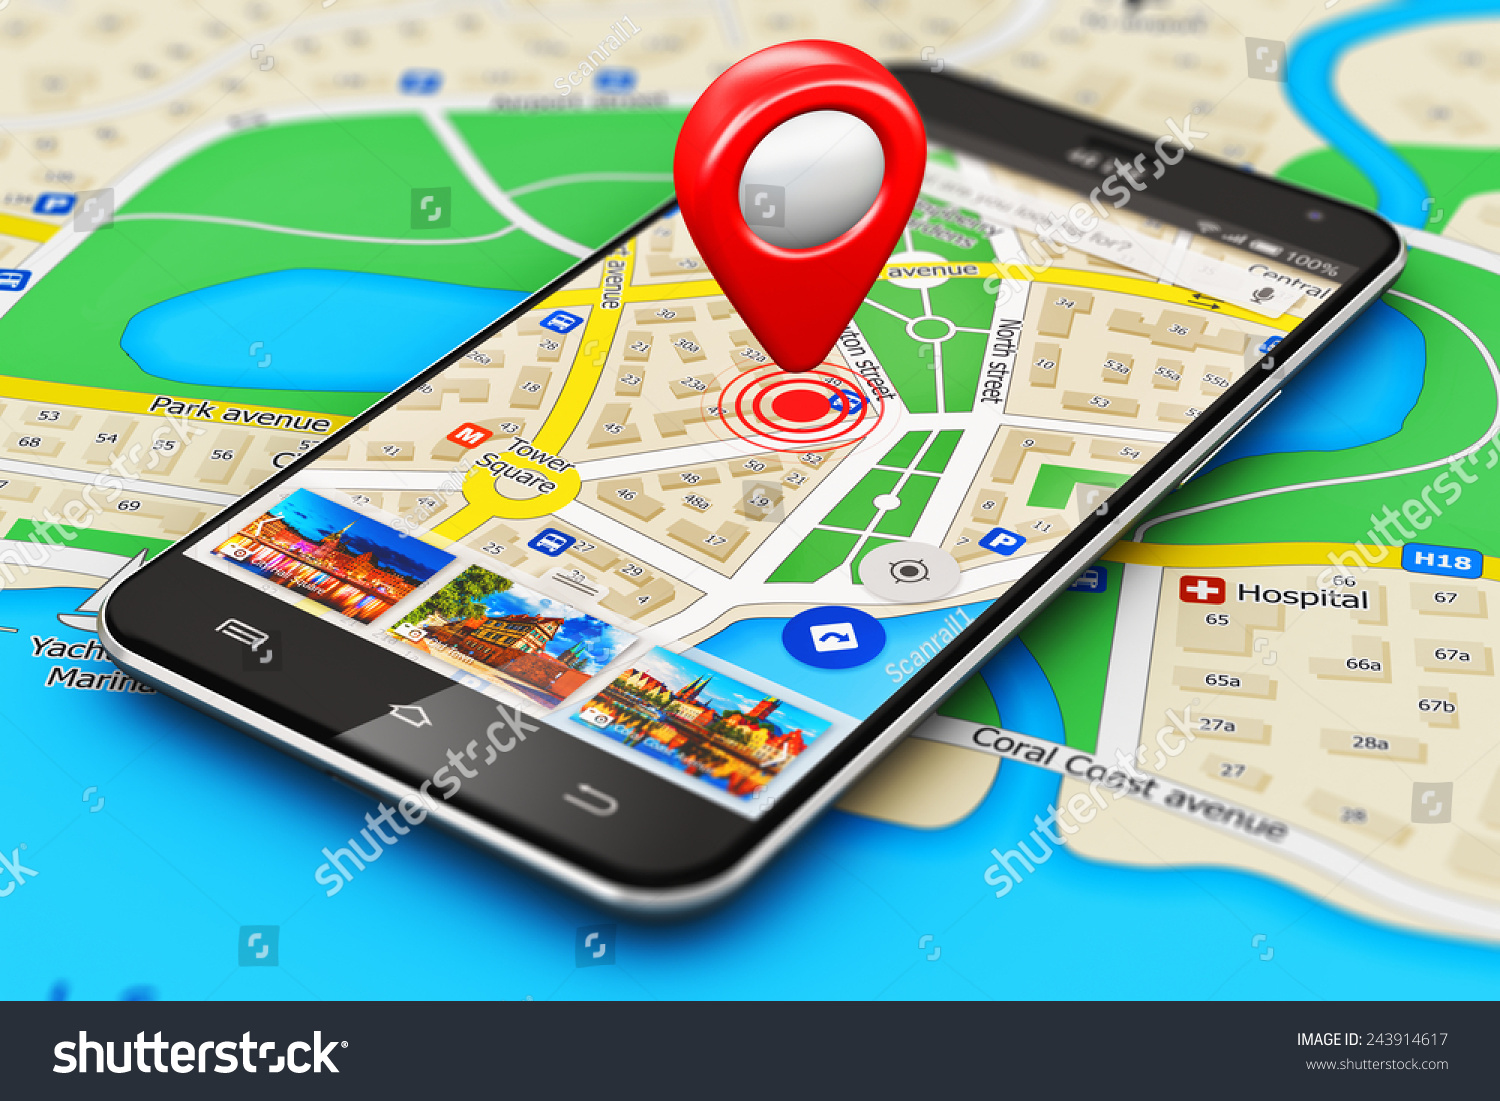 gps satellite navigation travel tourism location stock illustration 243914617 shutterstock. Black Bedroom Furniture Sets. Home Design Ideas